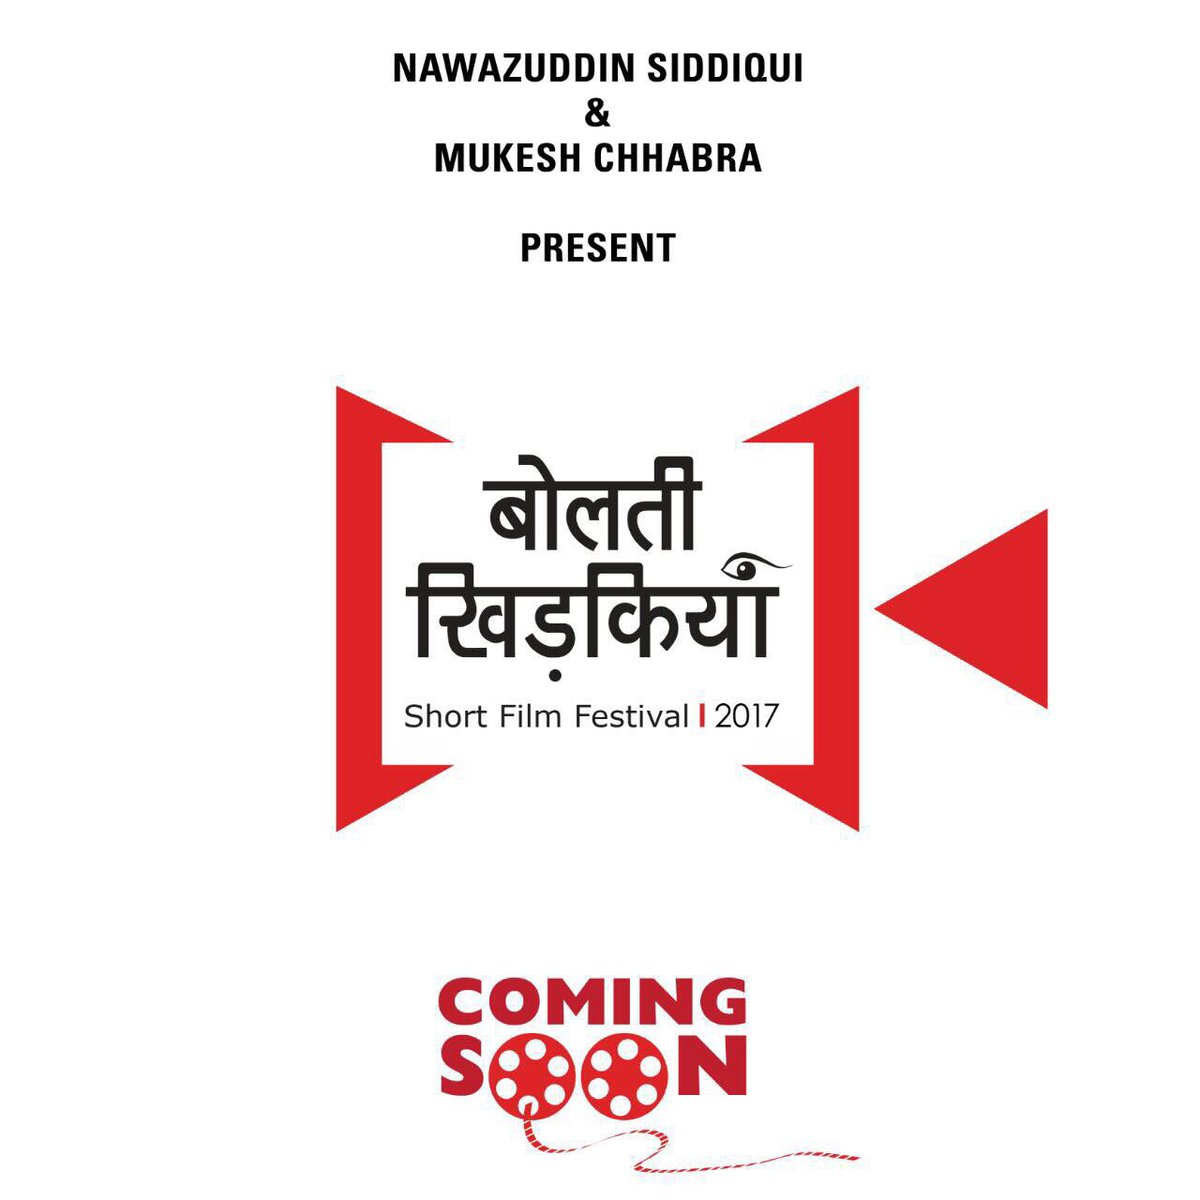 Nawazuddin Siddiqui joins hands with casting director Mukesh Chhabra to present Bolti Khidkiyaan, a Short-film Festival.